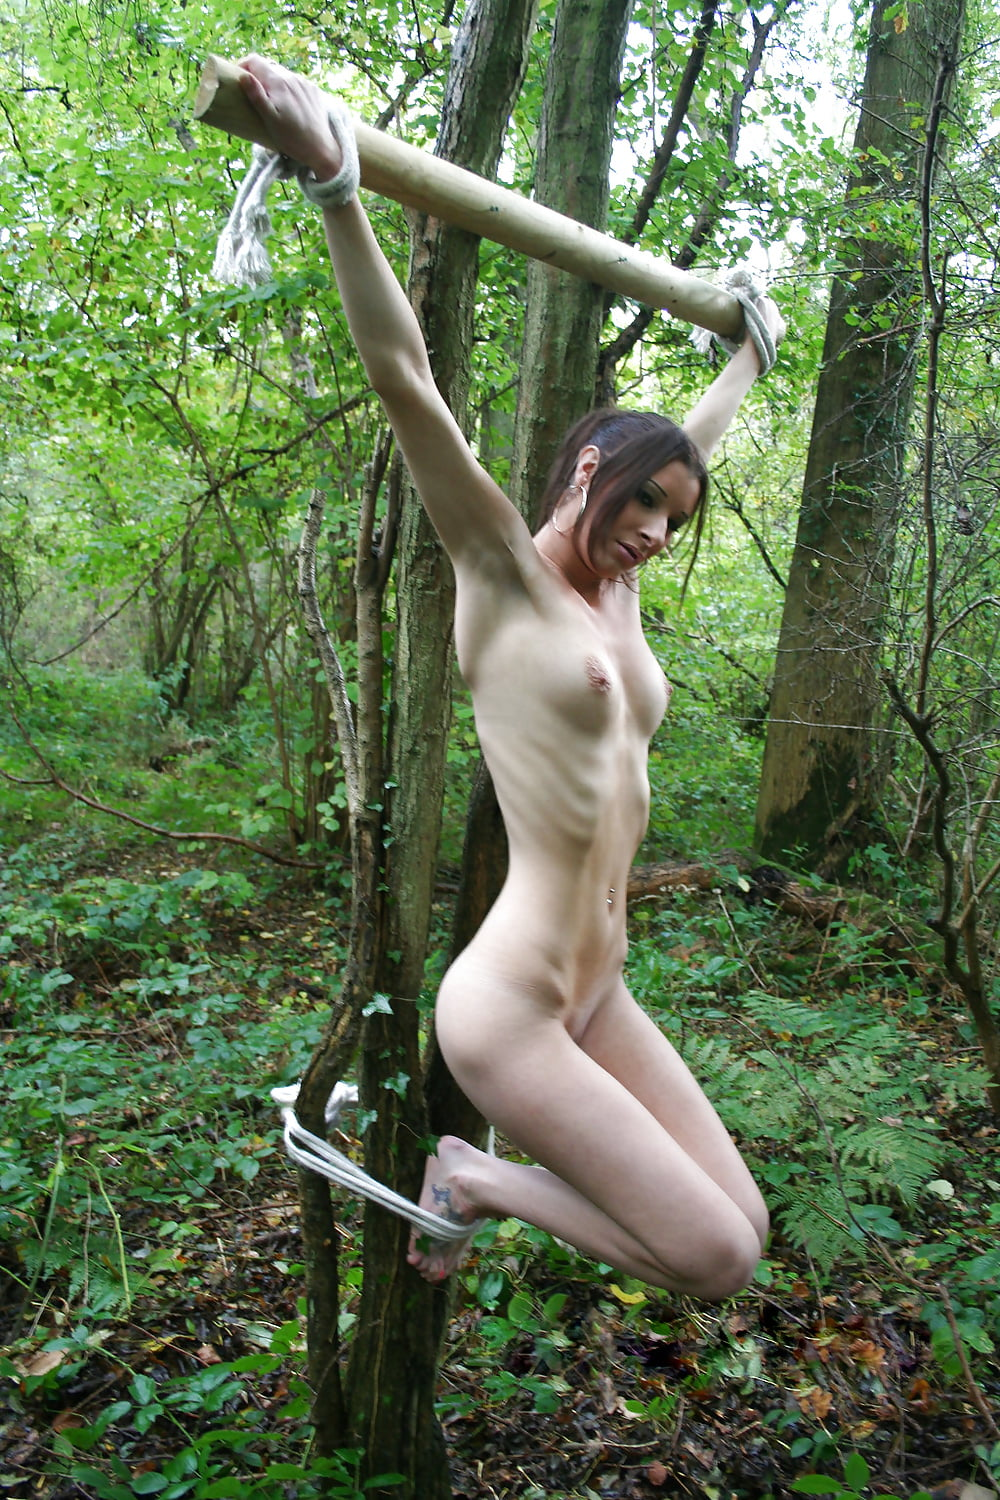 Tied Naked To A Tree - 15 Imgs - Xhamstercom-4620